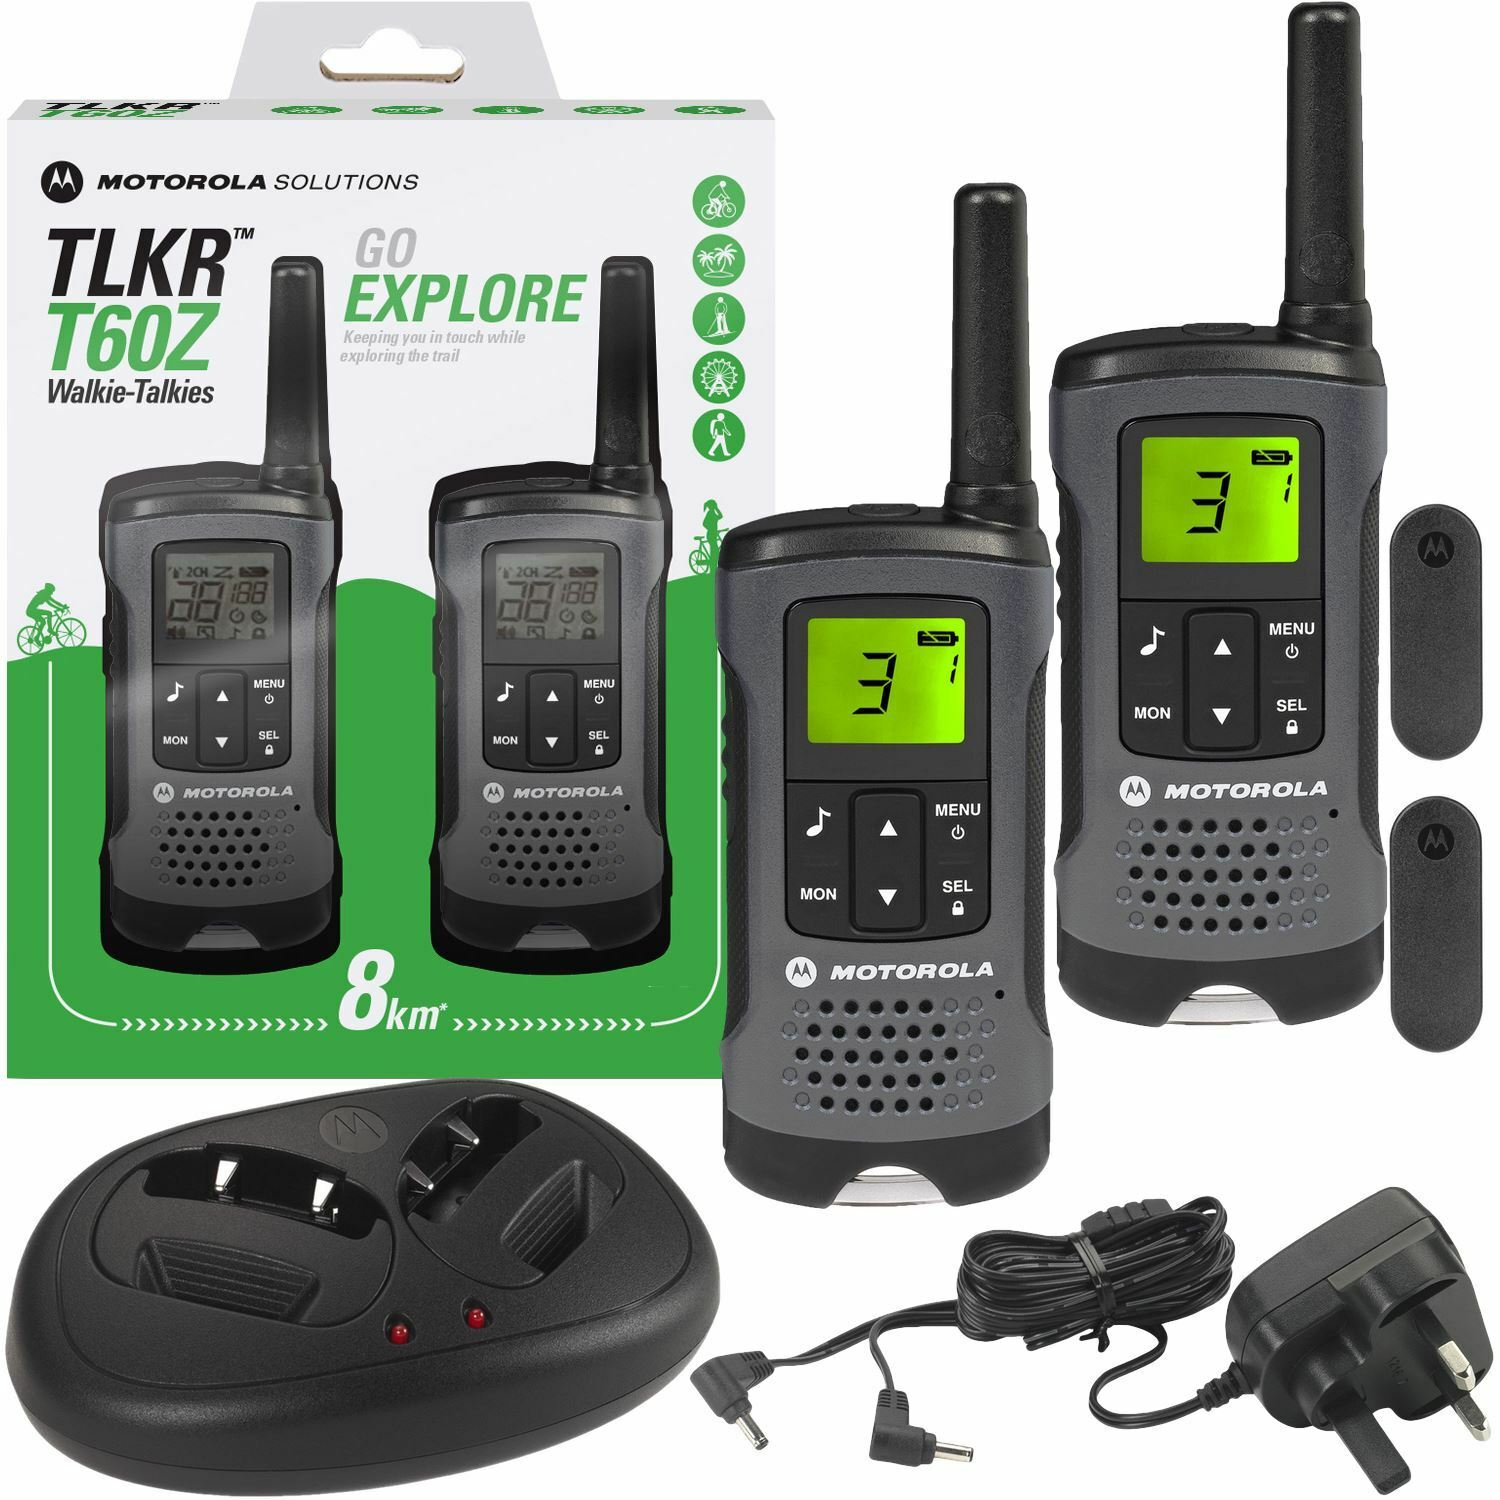 motorola tlkr t60z walkie talkie pmr446 5m radio rechargeable twin pack charger. Black Bedroom Furniture Sets. Home Design Ideas